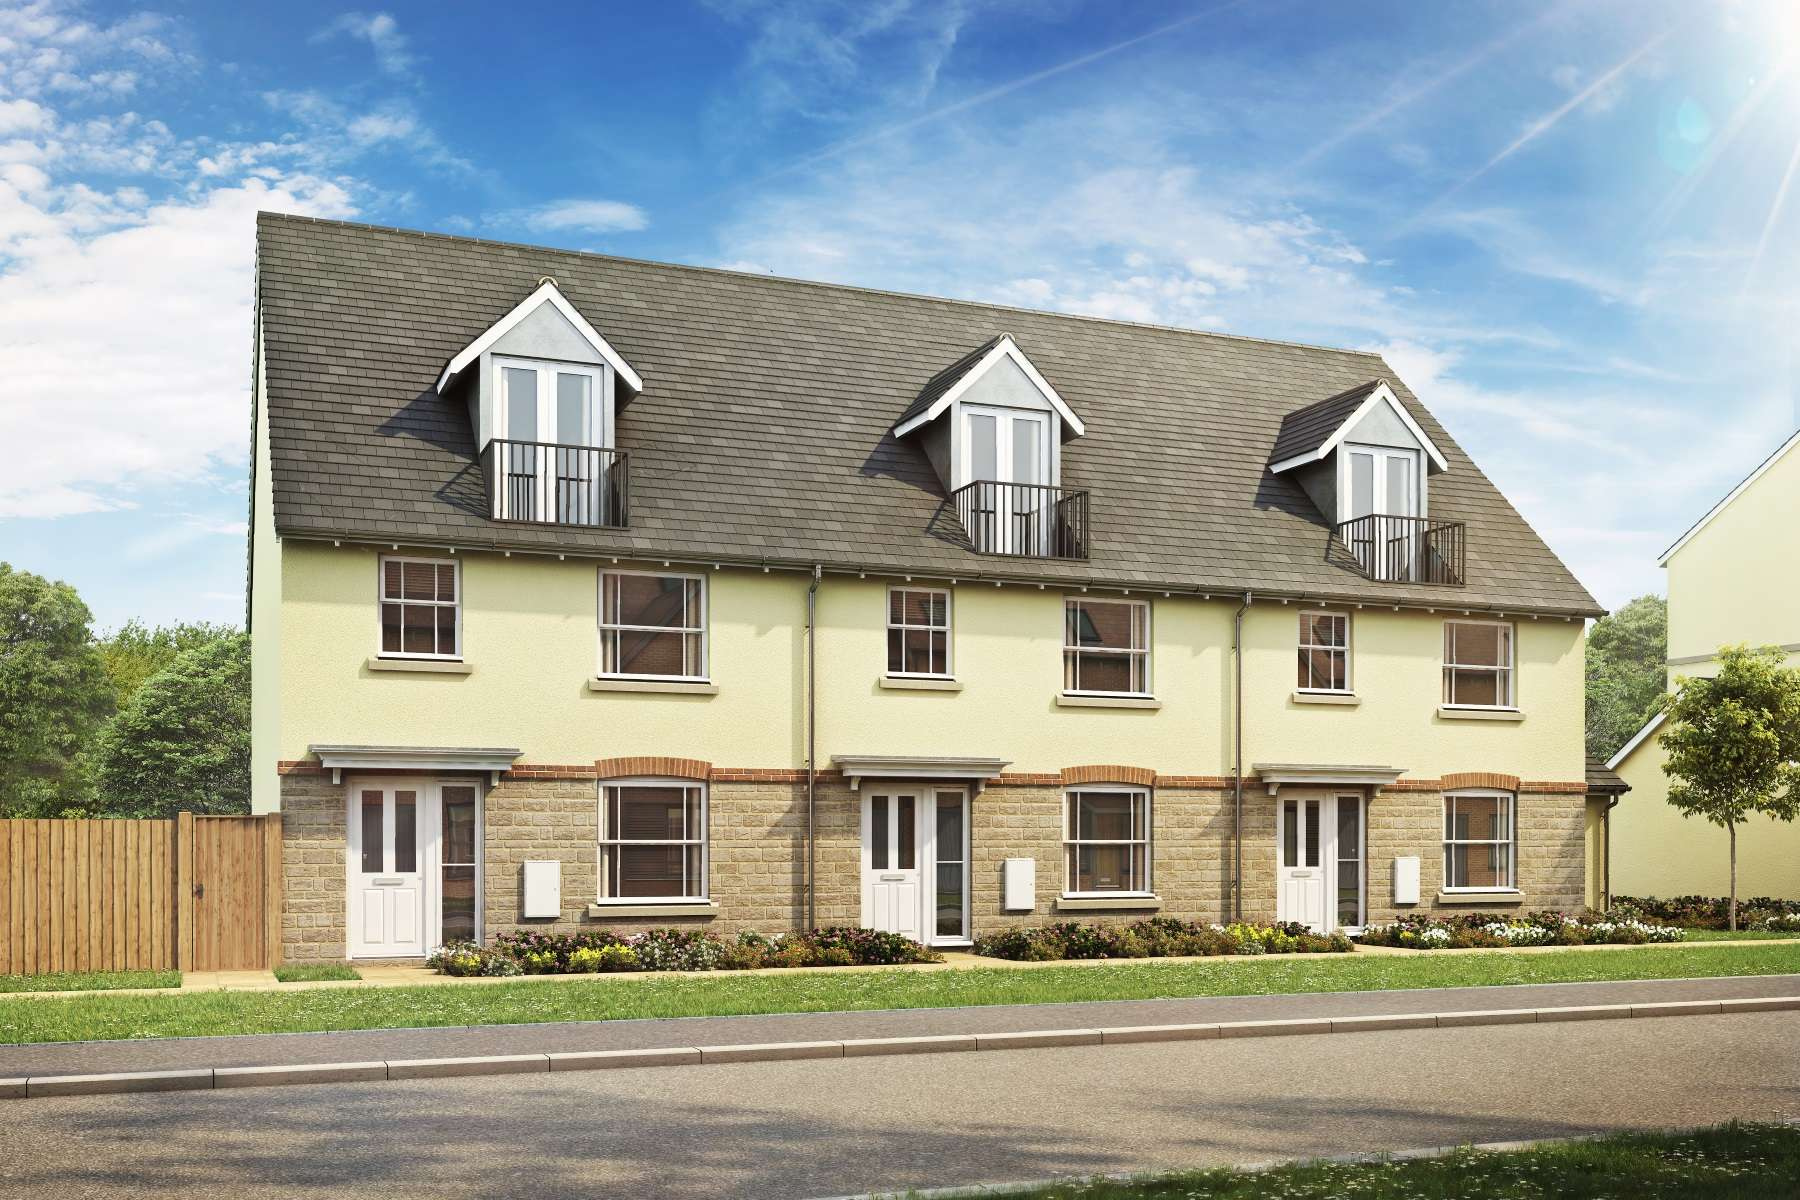 The Harton